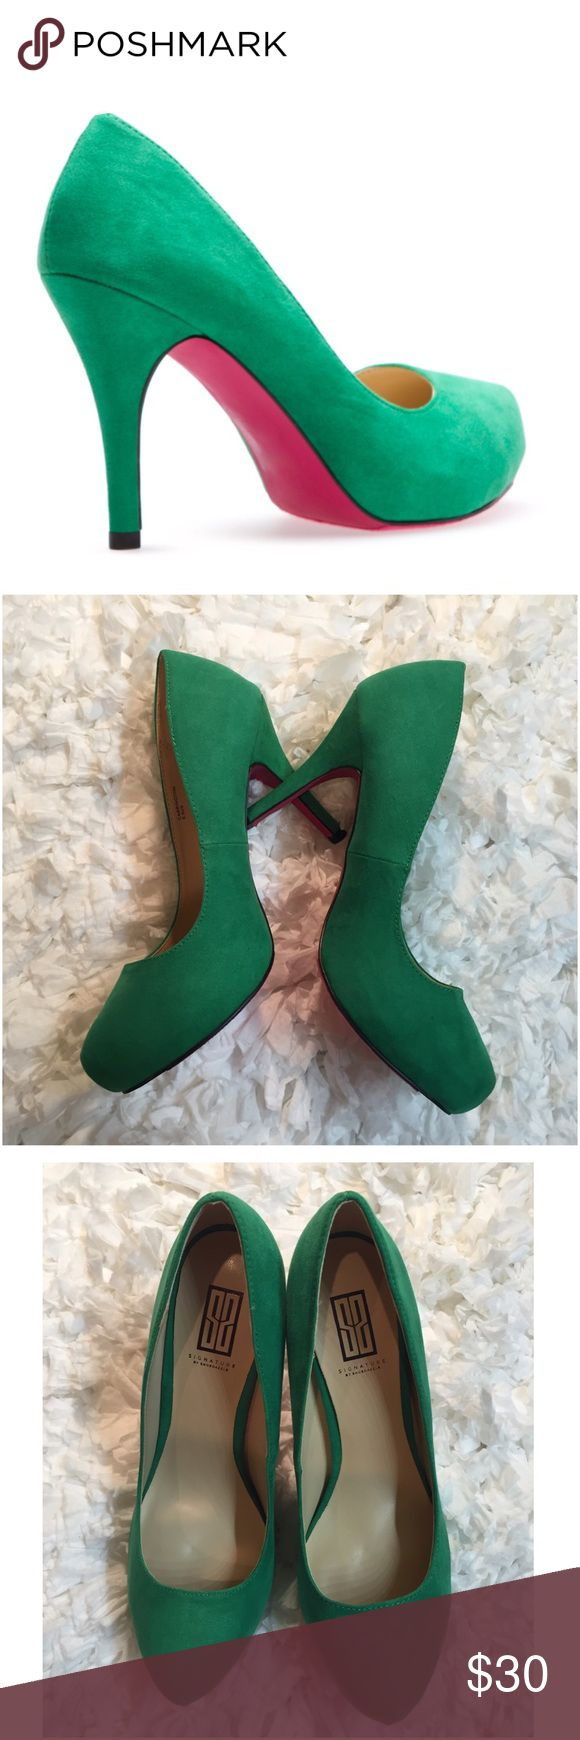 "NWOT! Green Signature by ShoeDazzle Green Pumps NEVER WORN! Signature by Shoe Dazzle Green Faux Suede Heels/Pumps. Heel approx 3"". Pink soles. 🌟SOLD OUT🌟 01041780g Shoe Dazzle Shoes Heels"